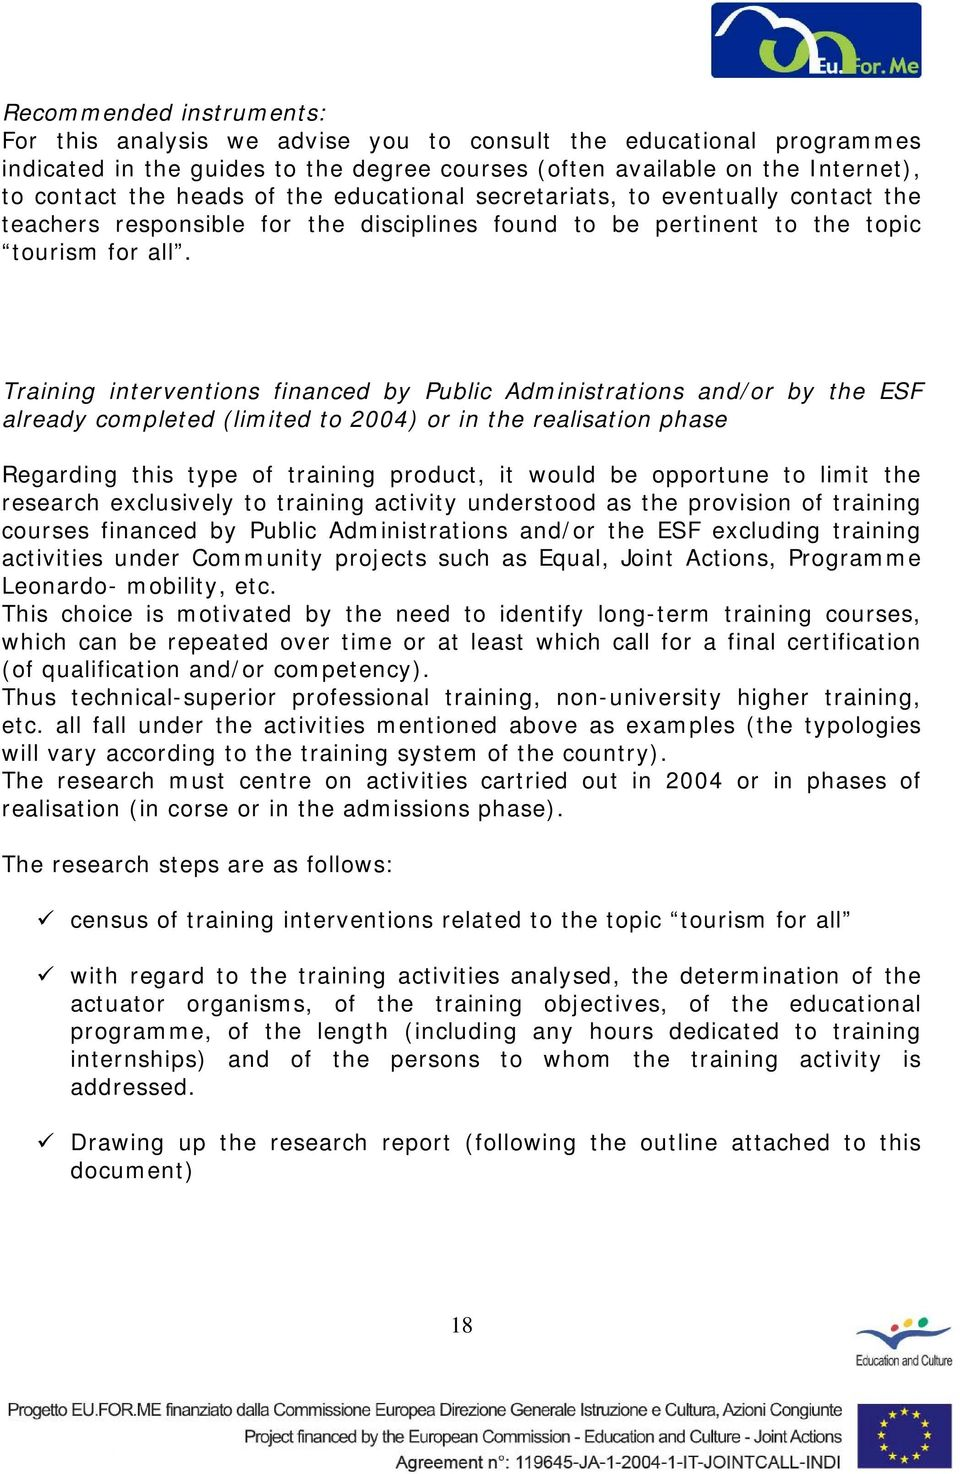 Training interventions financed by Public Administrations and/or by the ESF already completed (limited to 2004) or in the realisation phase Regarding this type of training product, it would be